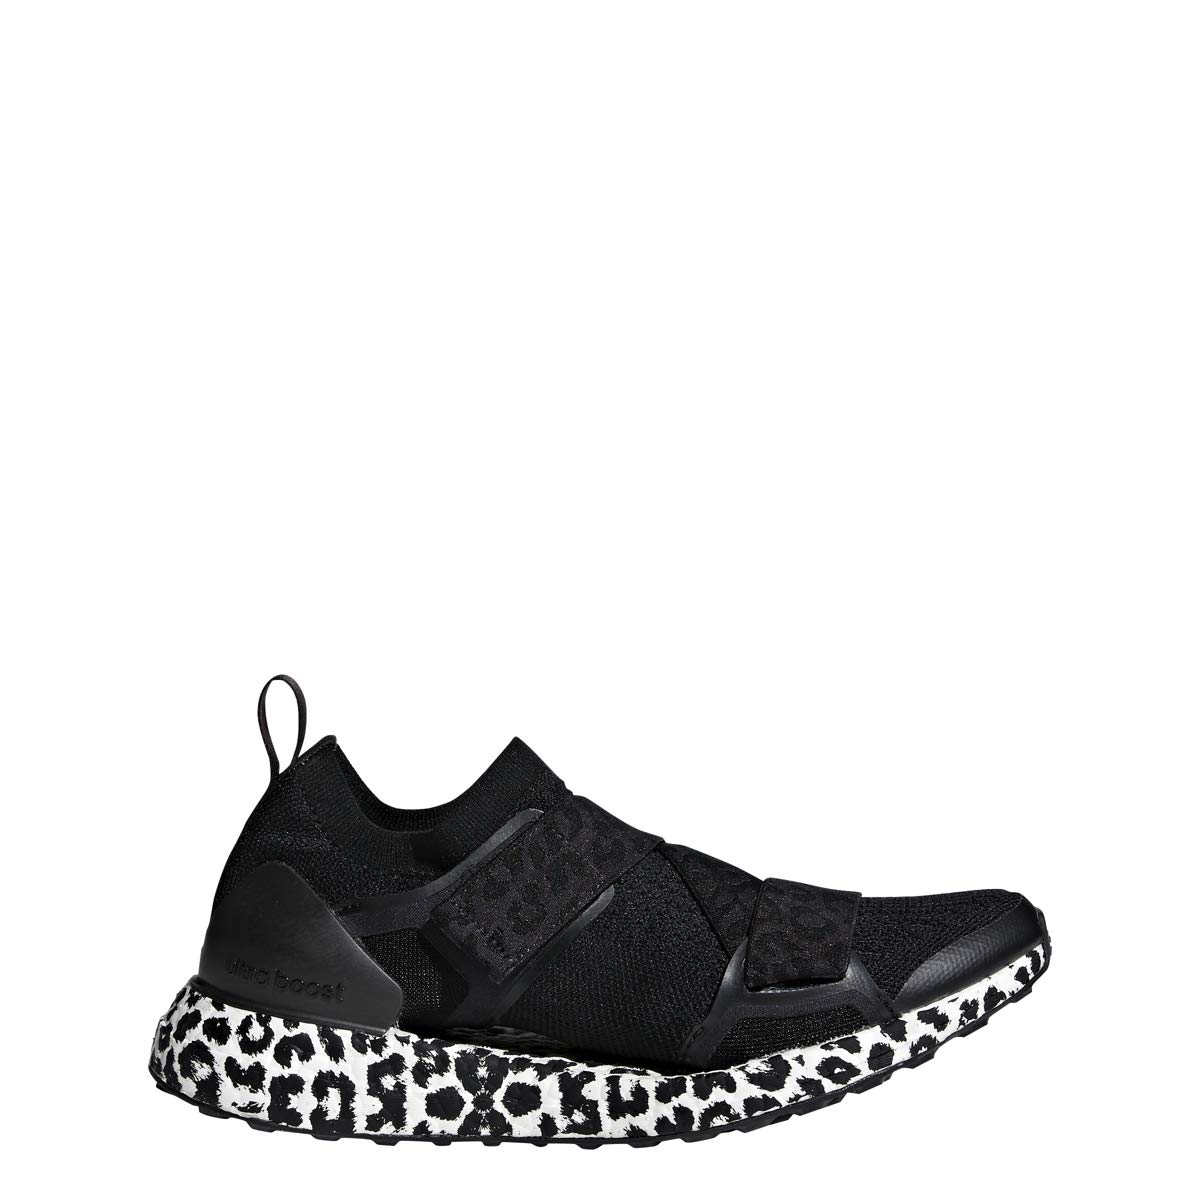 Core Black Core Black Footwear White Adidas Womens Ultraboost X shoes Running shoes